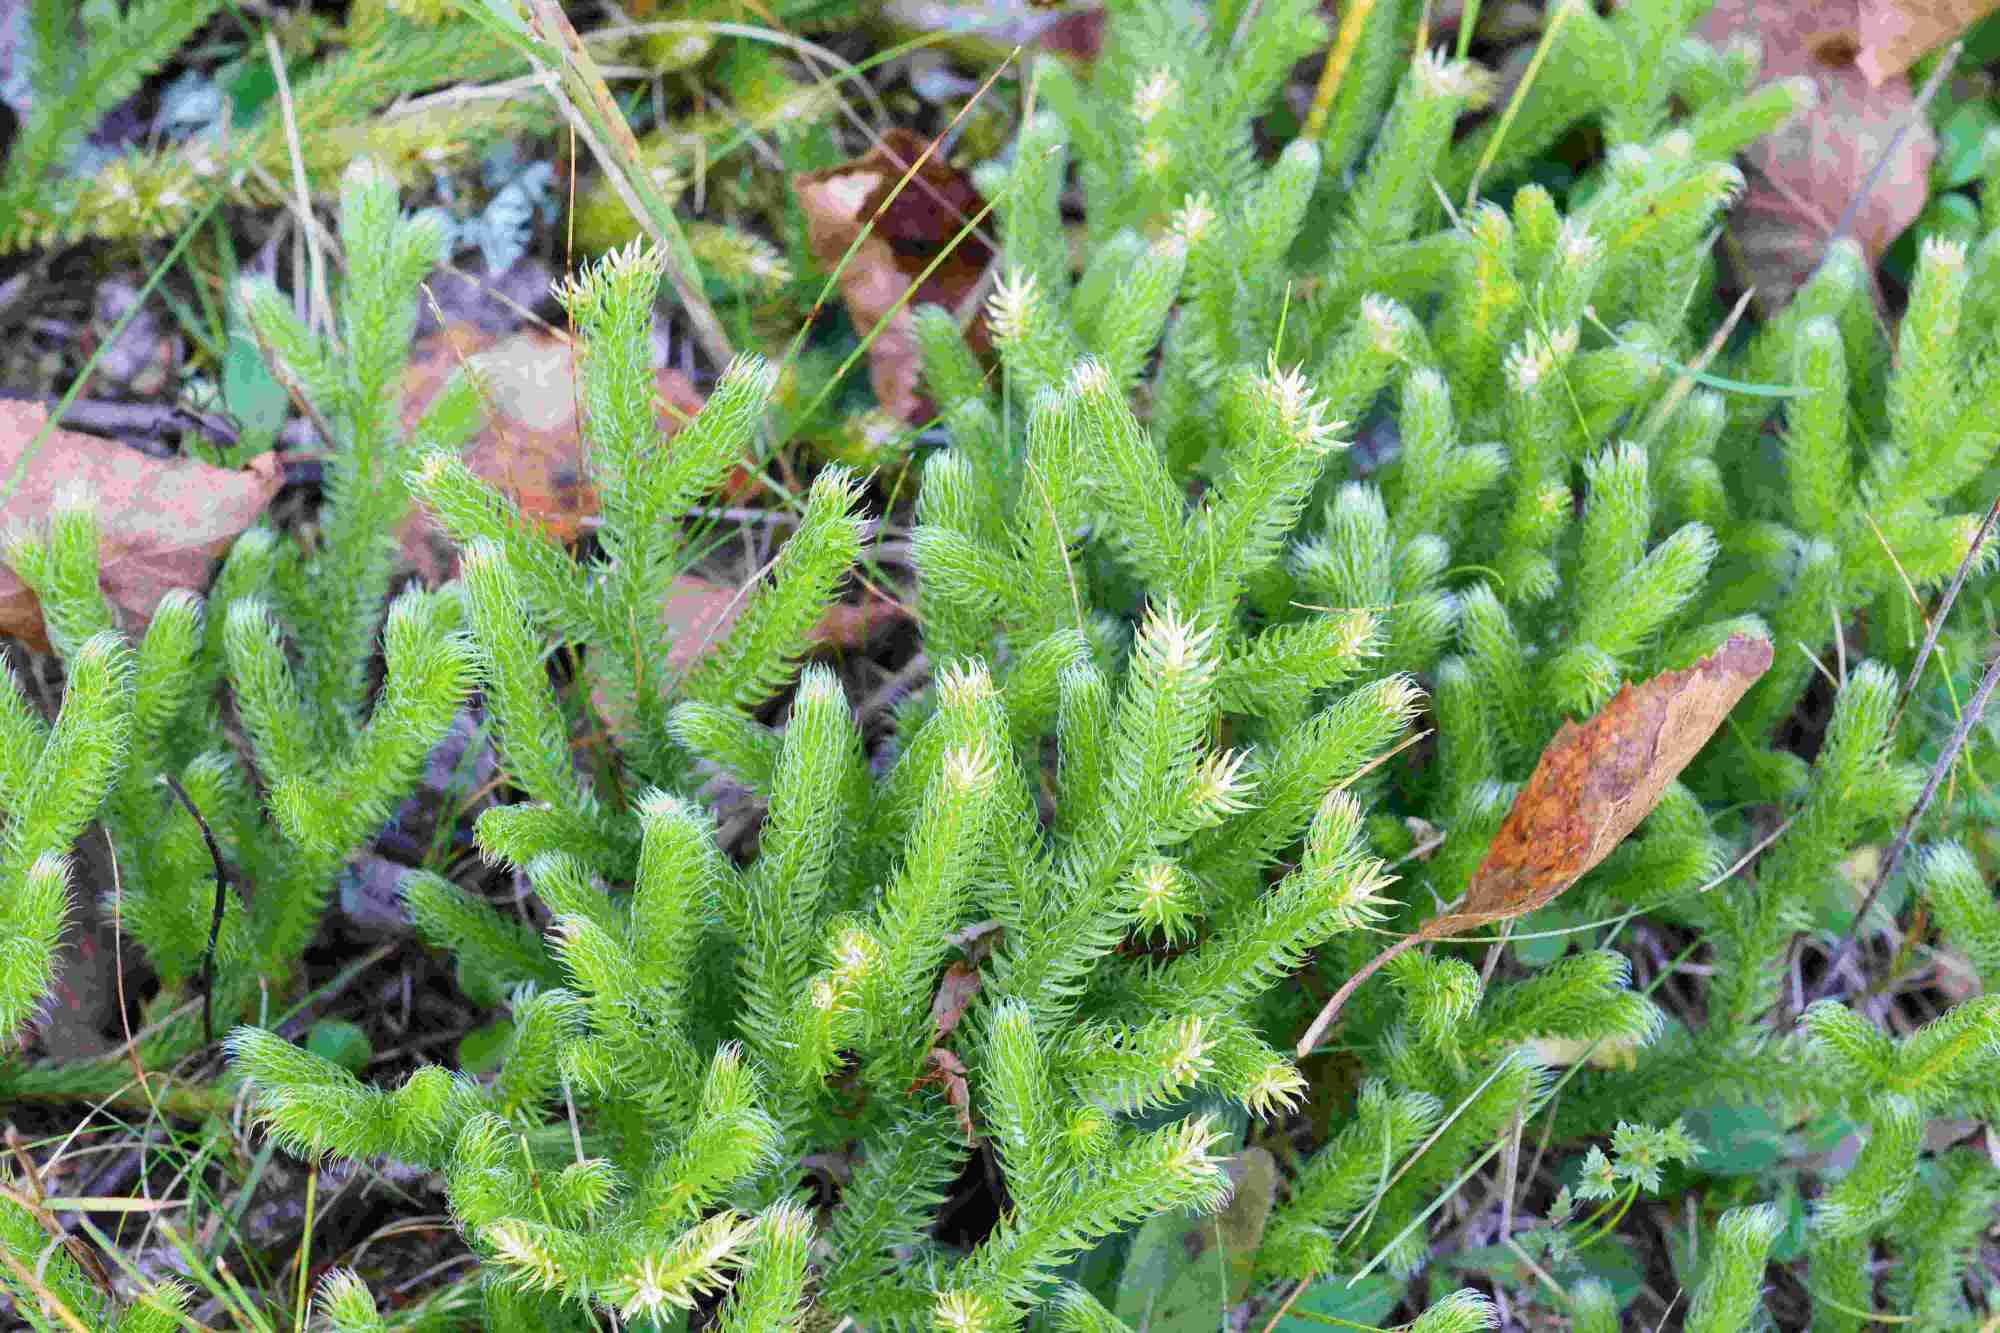 hight resolution of the groups of bryophytes